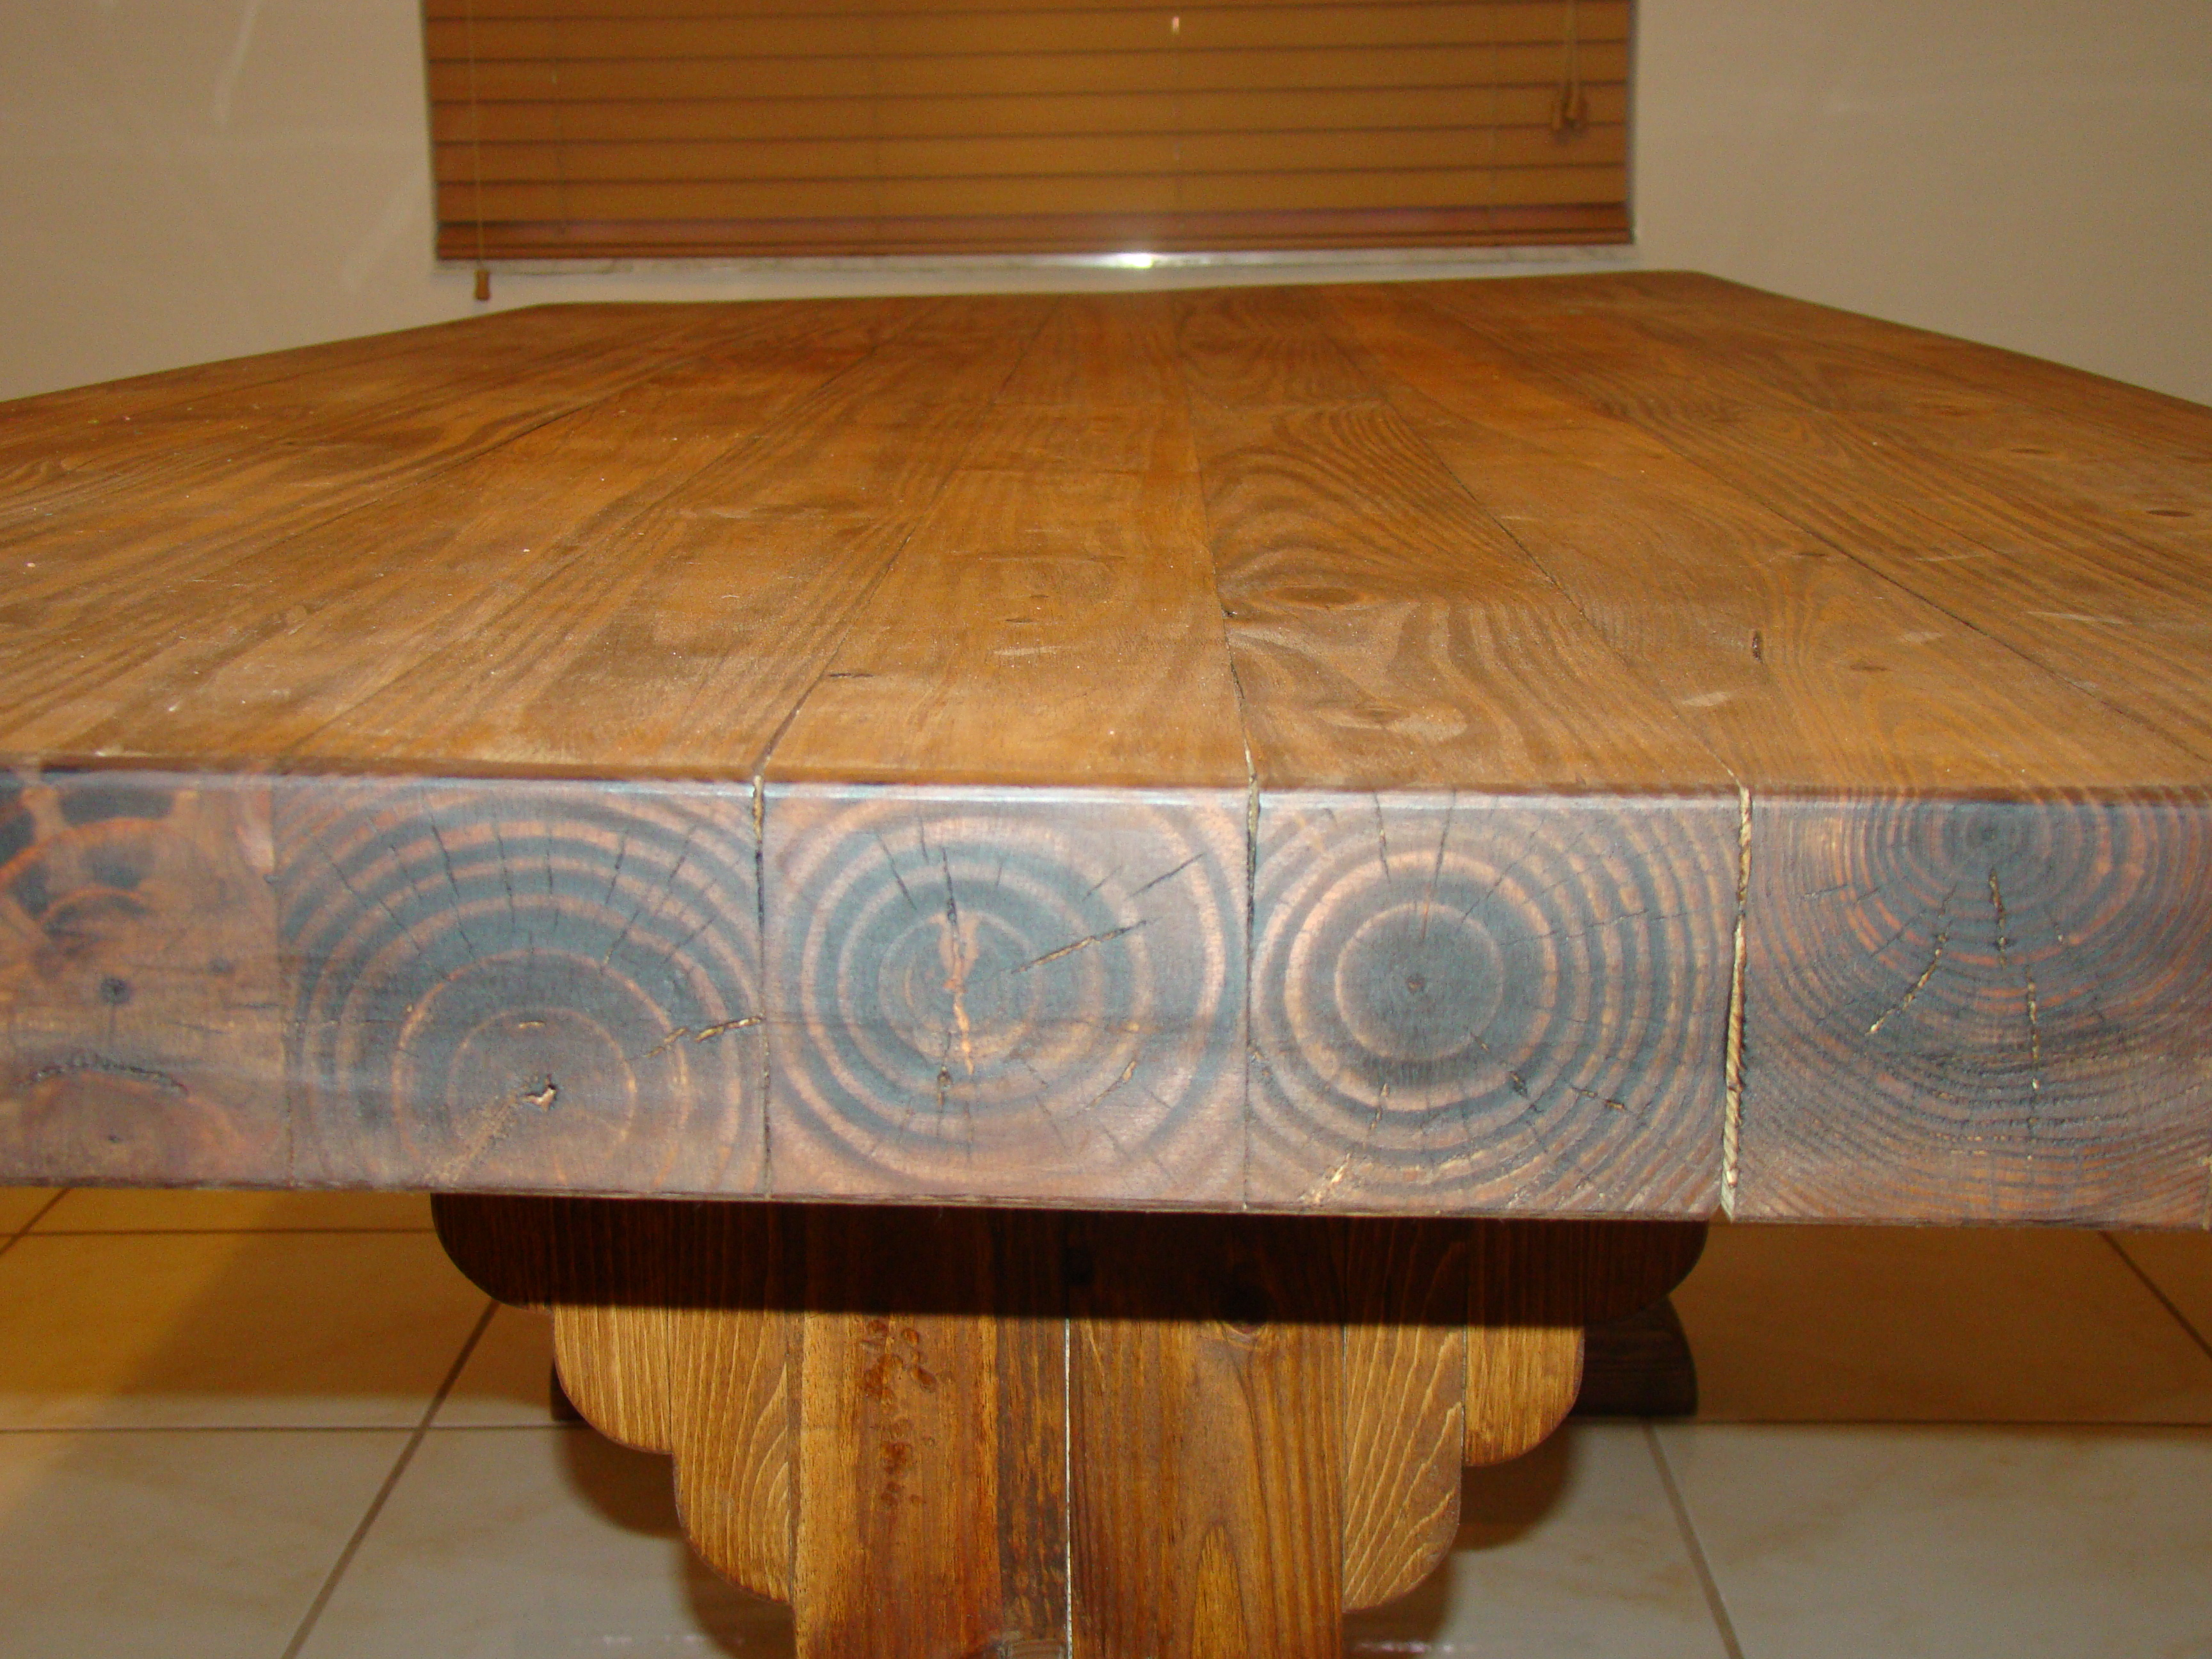 Rustic Wood Dining Room Table Rustic Dining Furniture Mexicali Rustic Wood Sideboard Table